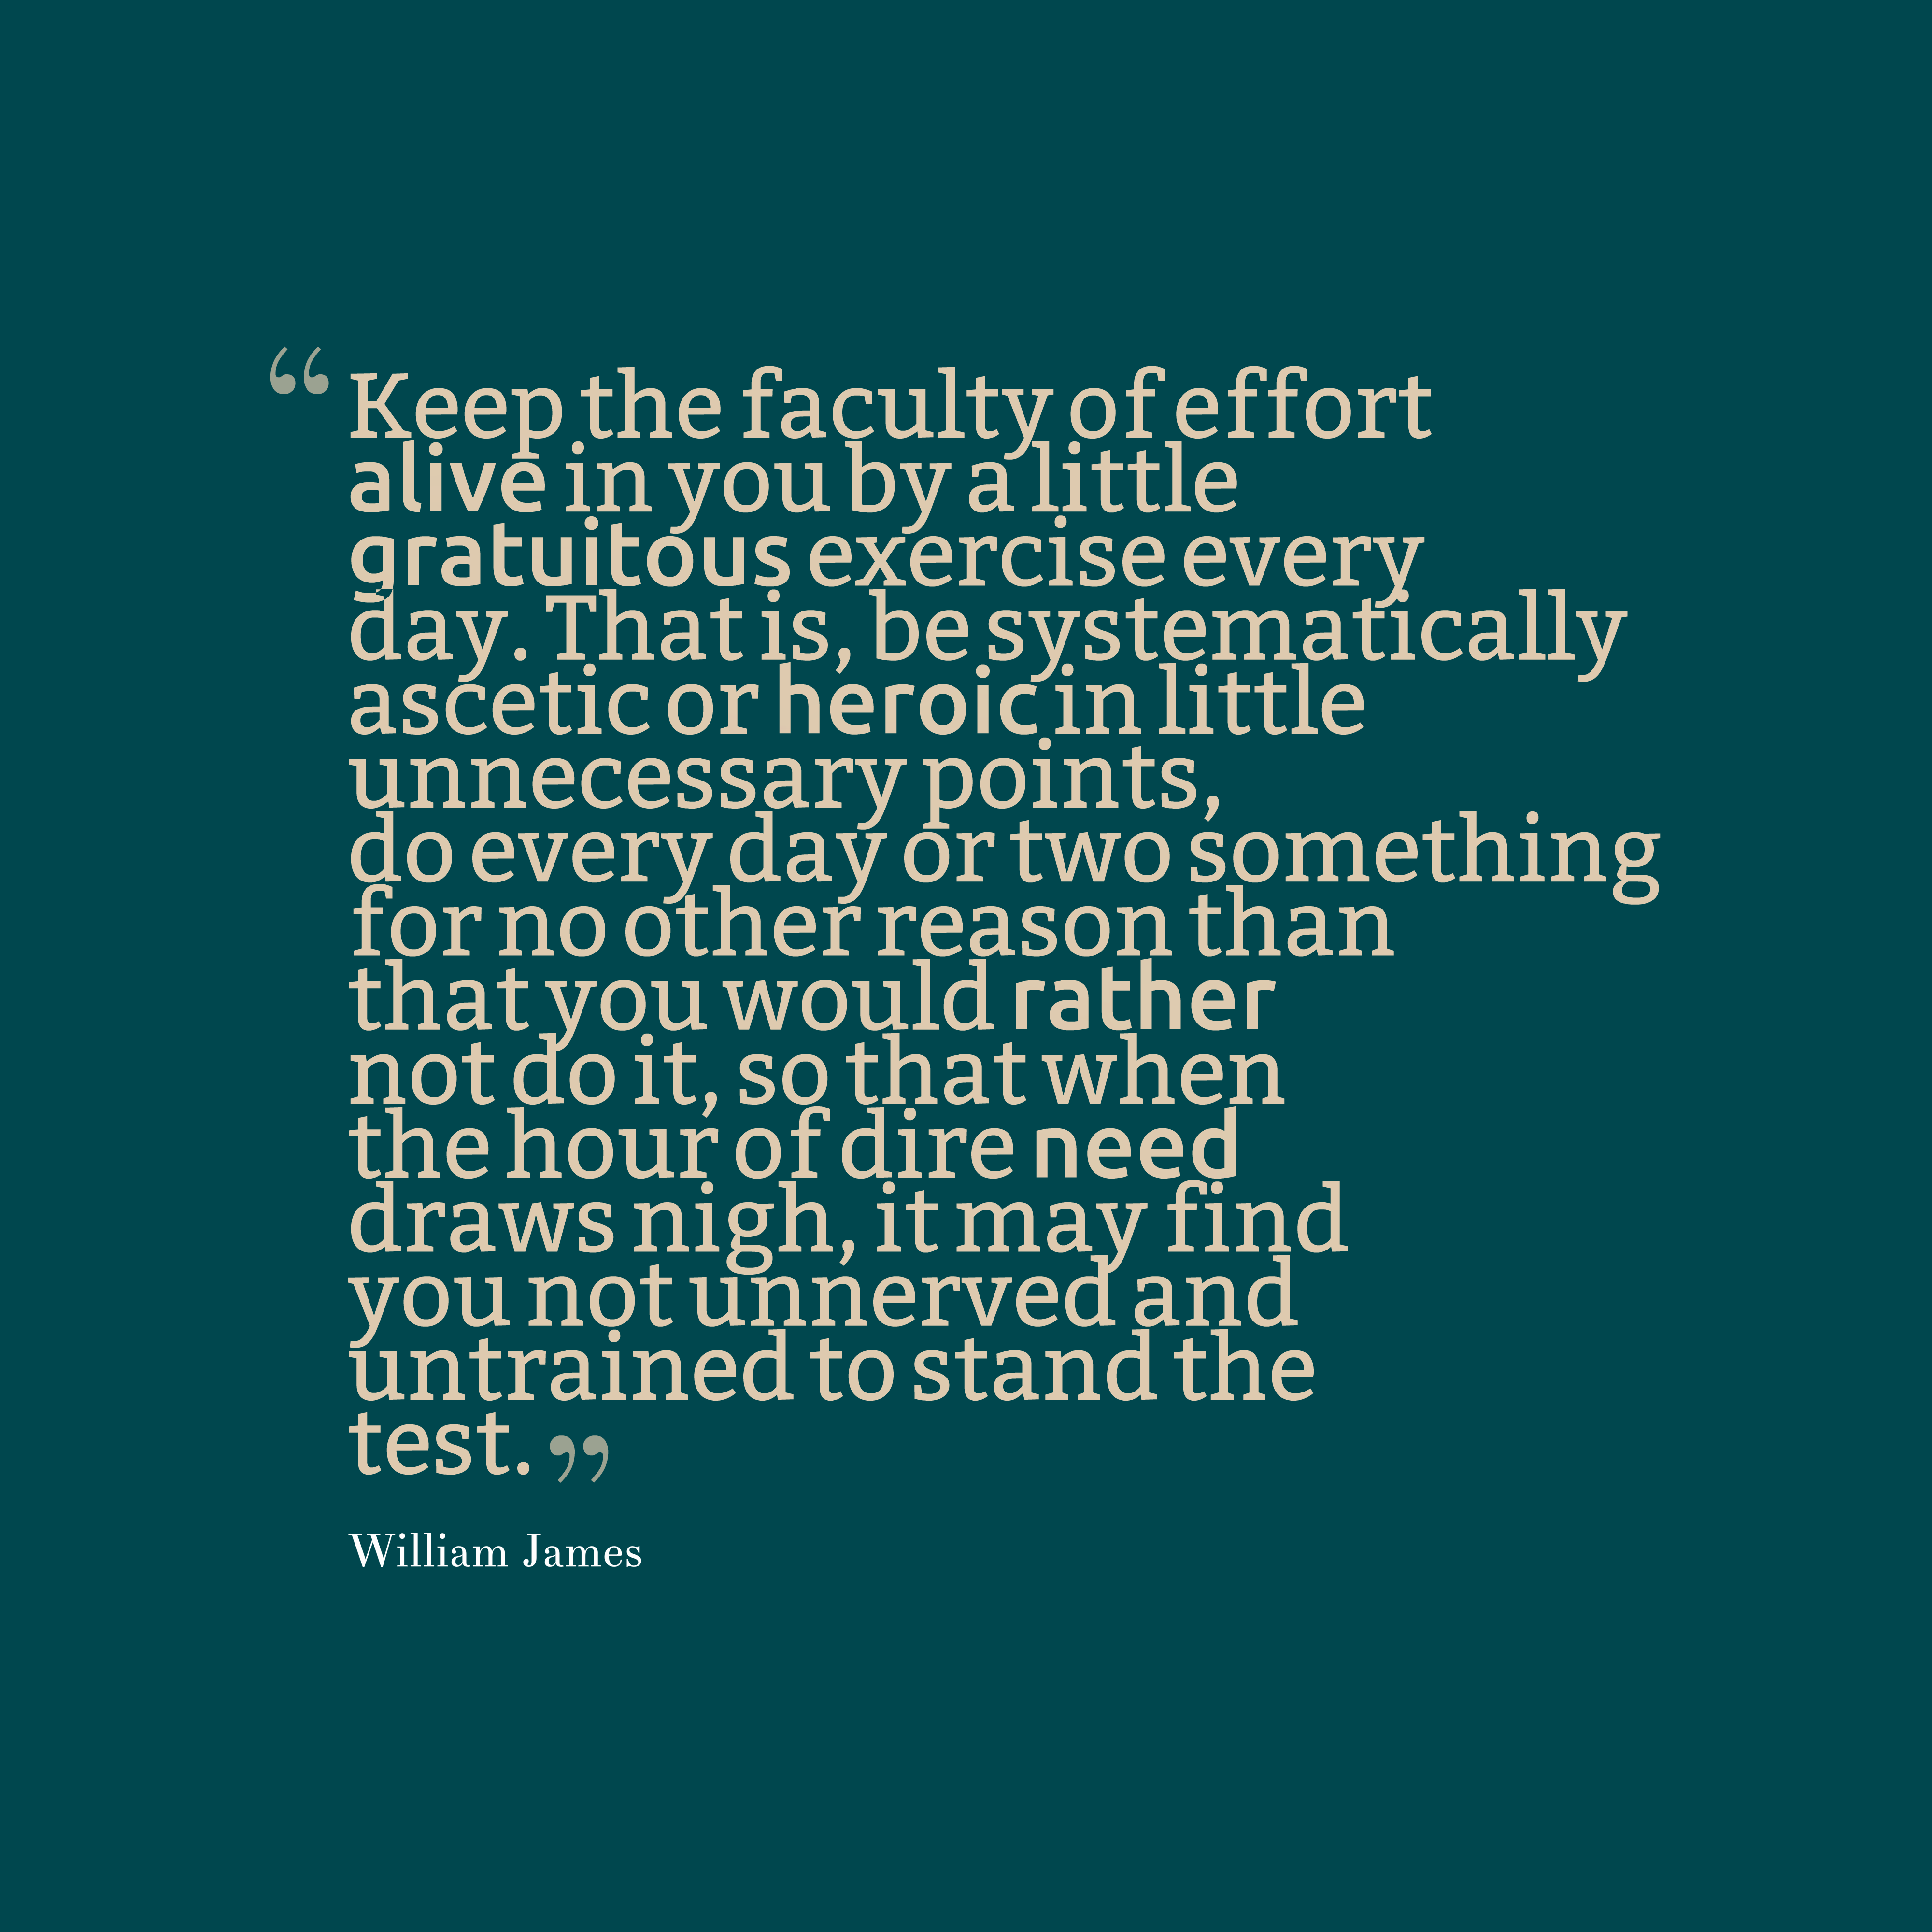 Quotes image of Keep the faculty of effort alive in you by a little gratuitous exercise every day. That is, be systematically ascetic or heroic in little unnecessary points, do every day or two something for no other reason than that you would rather not do it, so that when the hour of dire need draws nigh, it may find you not unnerved and untrained to stand the test.